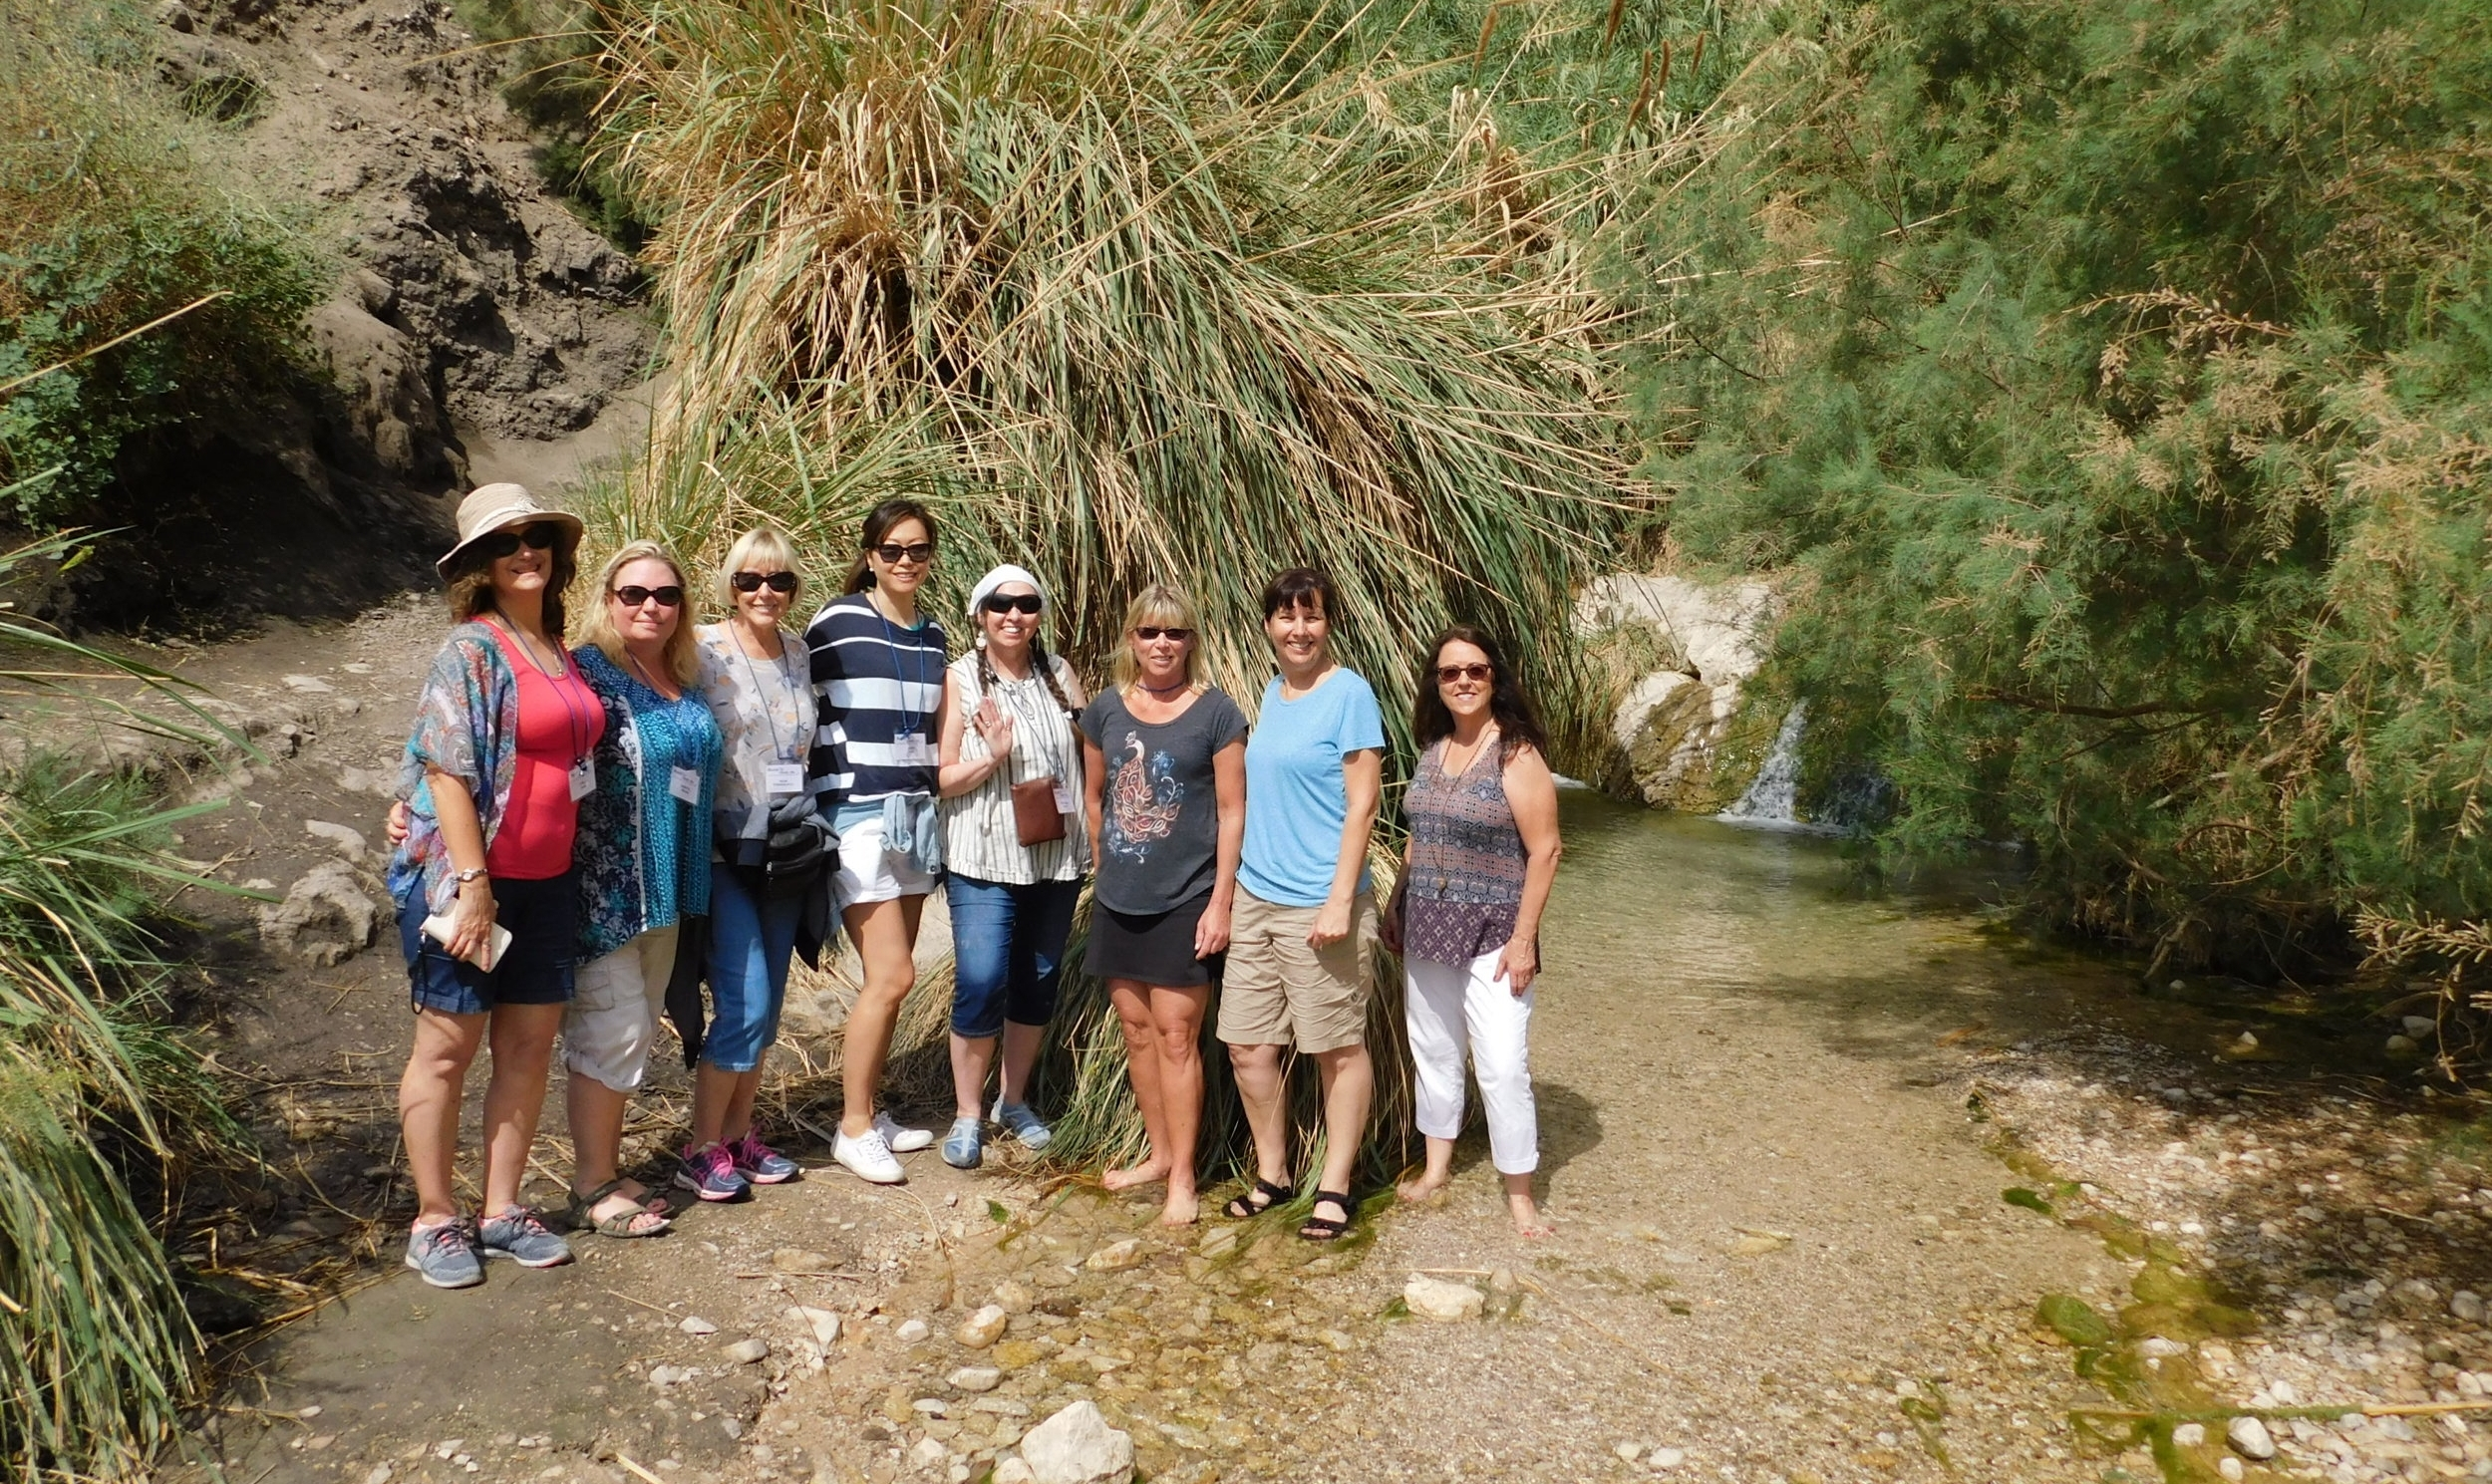 Hiking in En Gedi where David hid in the caves from Saul.